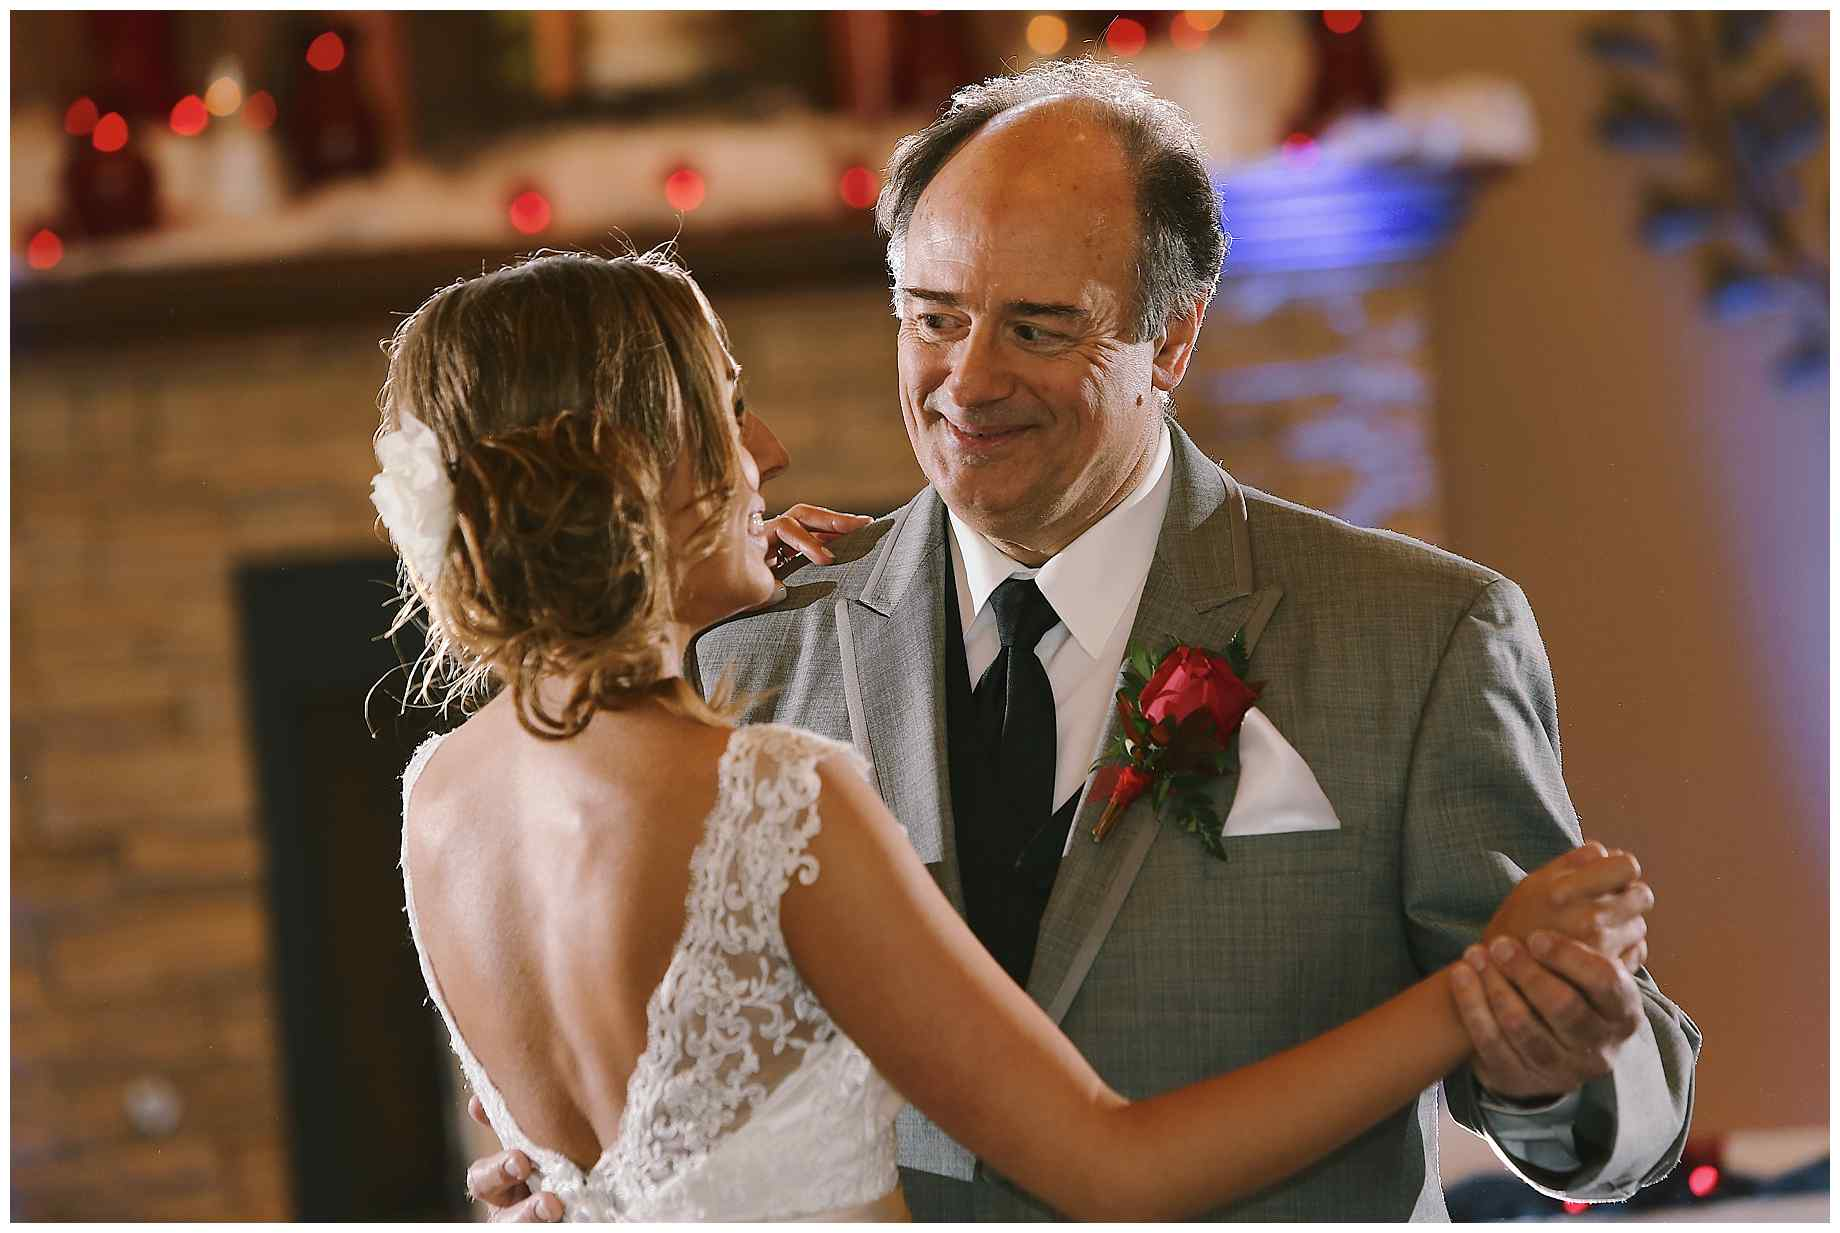 Father Daughter Wedding Dance.Favorite Part Of A Wedding Father Daughter Dance Alexm